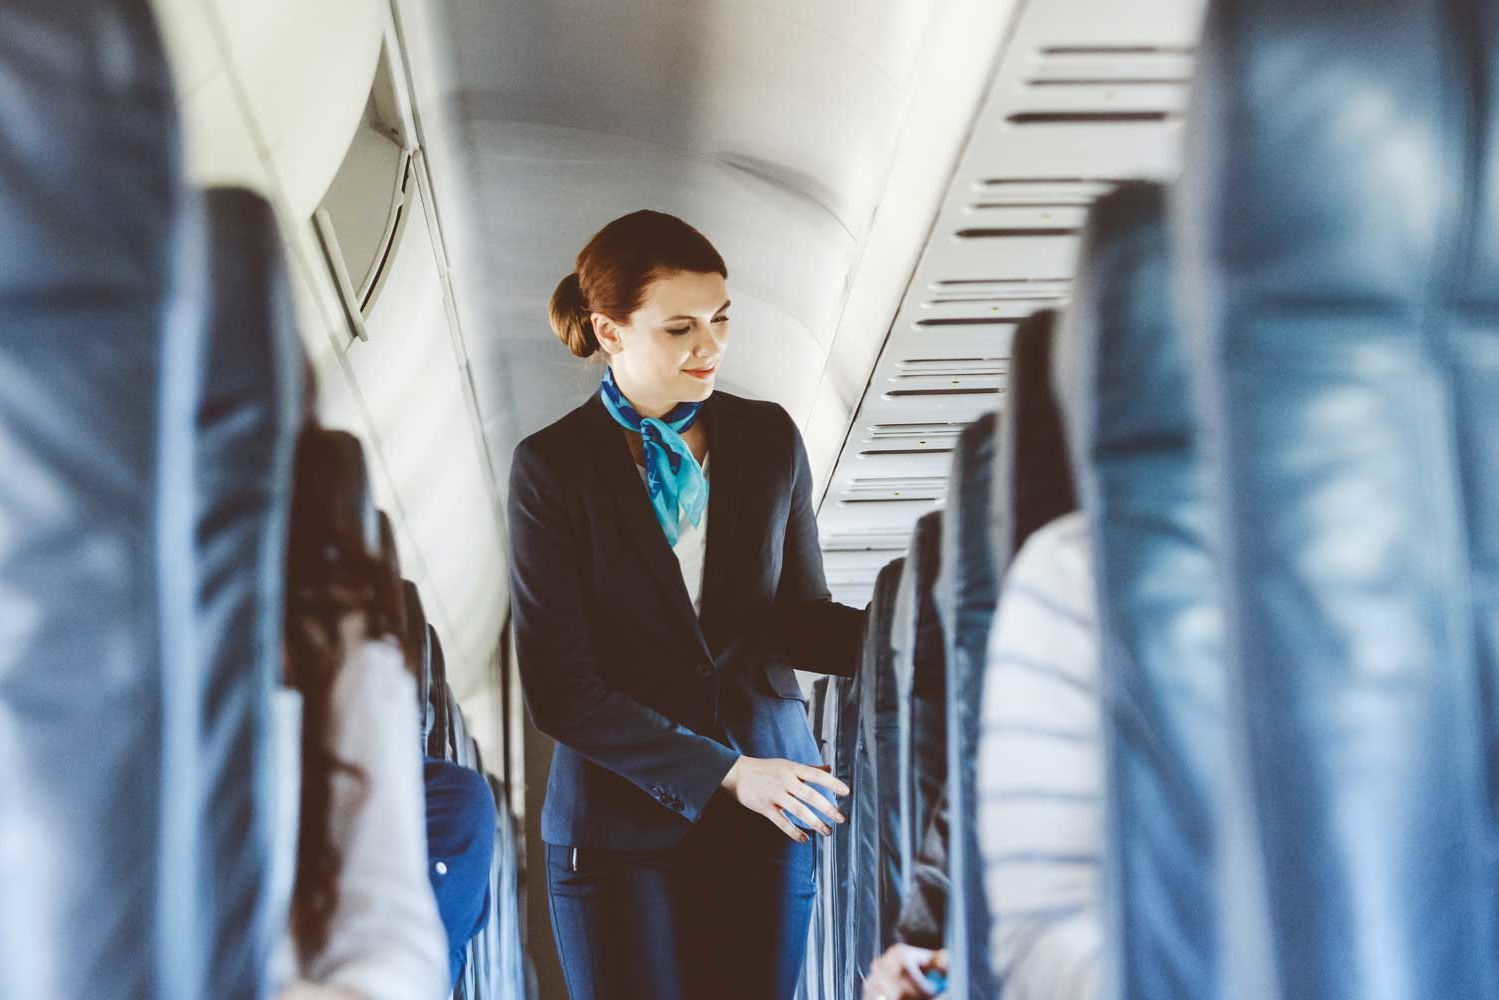 Tipping Flight Attendants? Here's Where Airlines Stand on the Topic